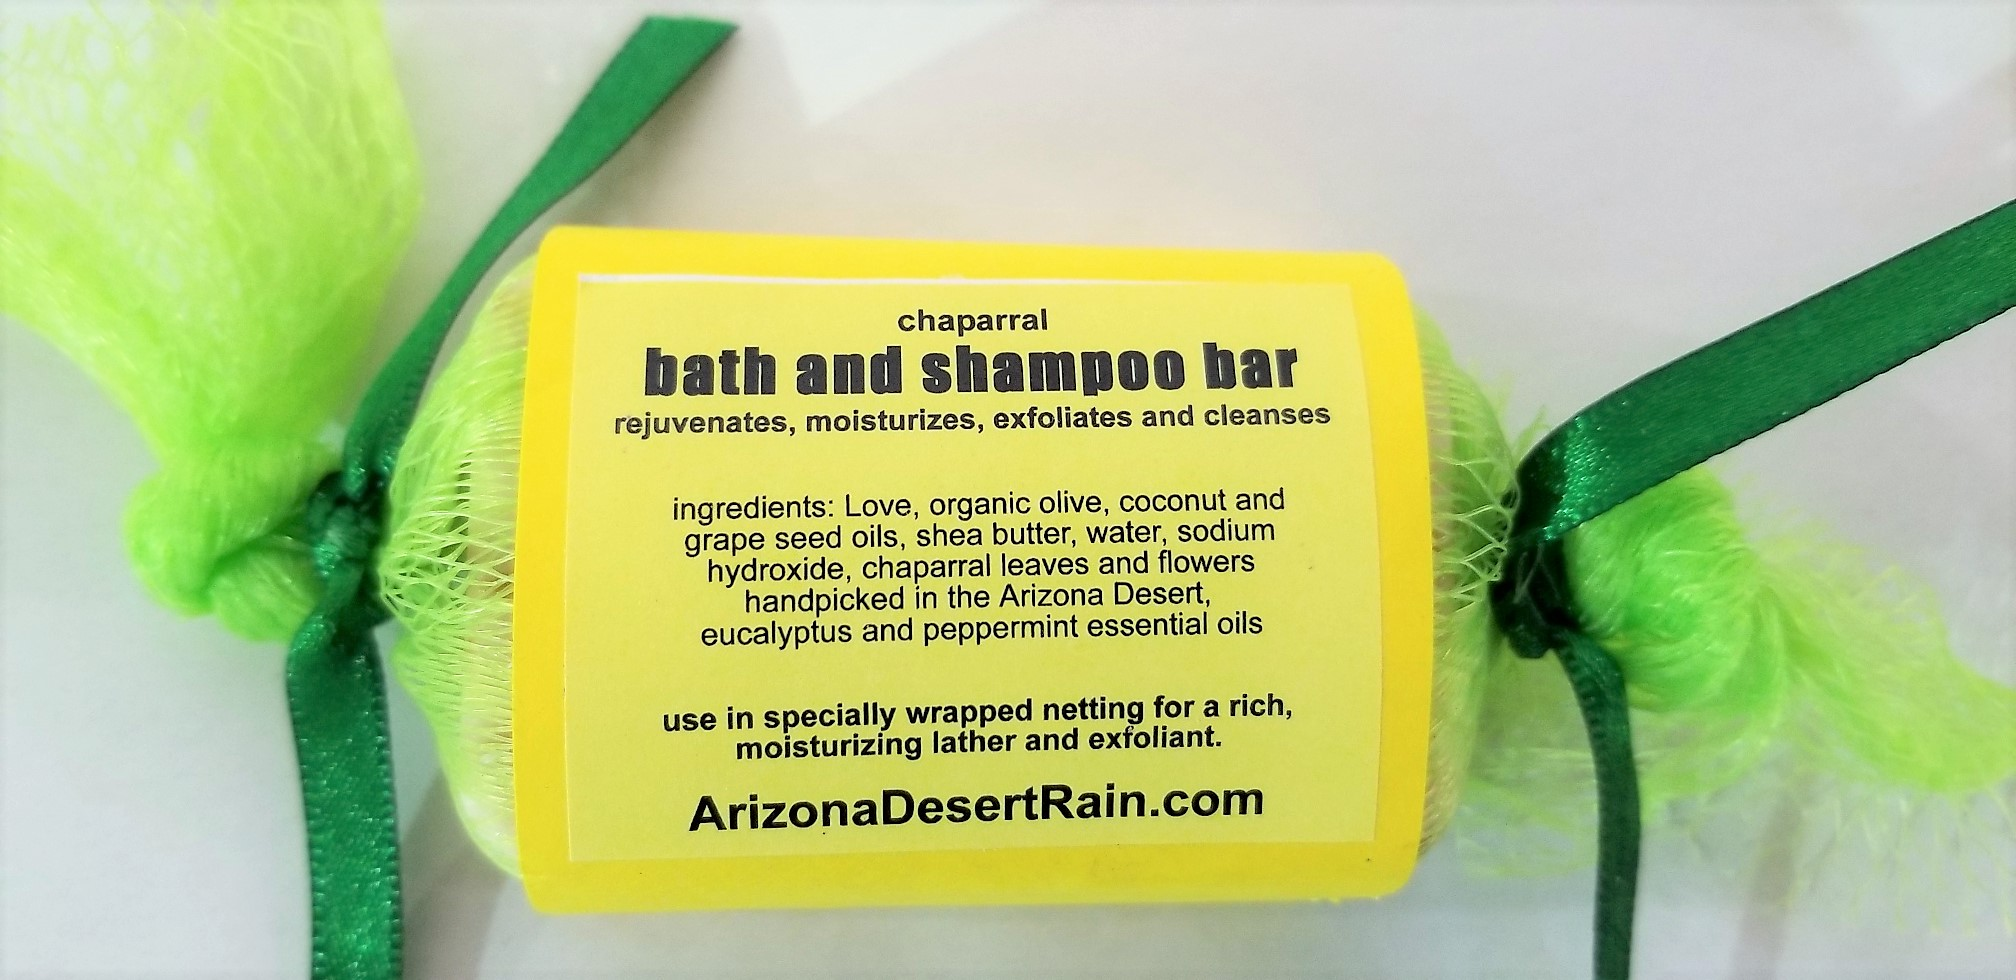 Chaparral Desert Rain Bath and Shampoo Bar by Arizona Desert Rain